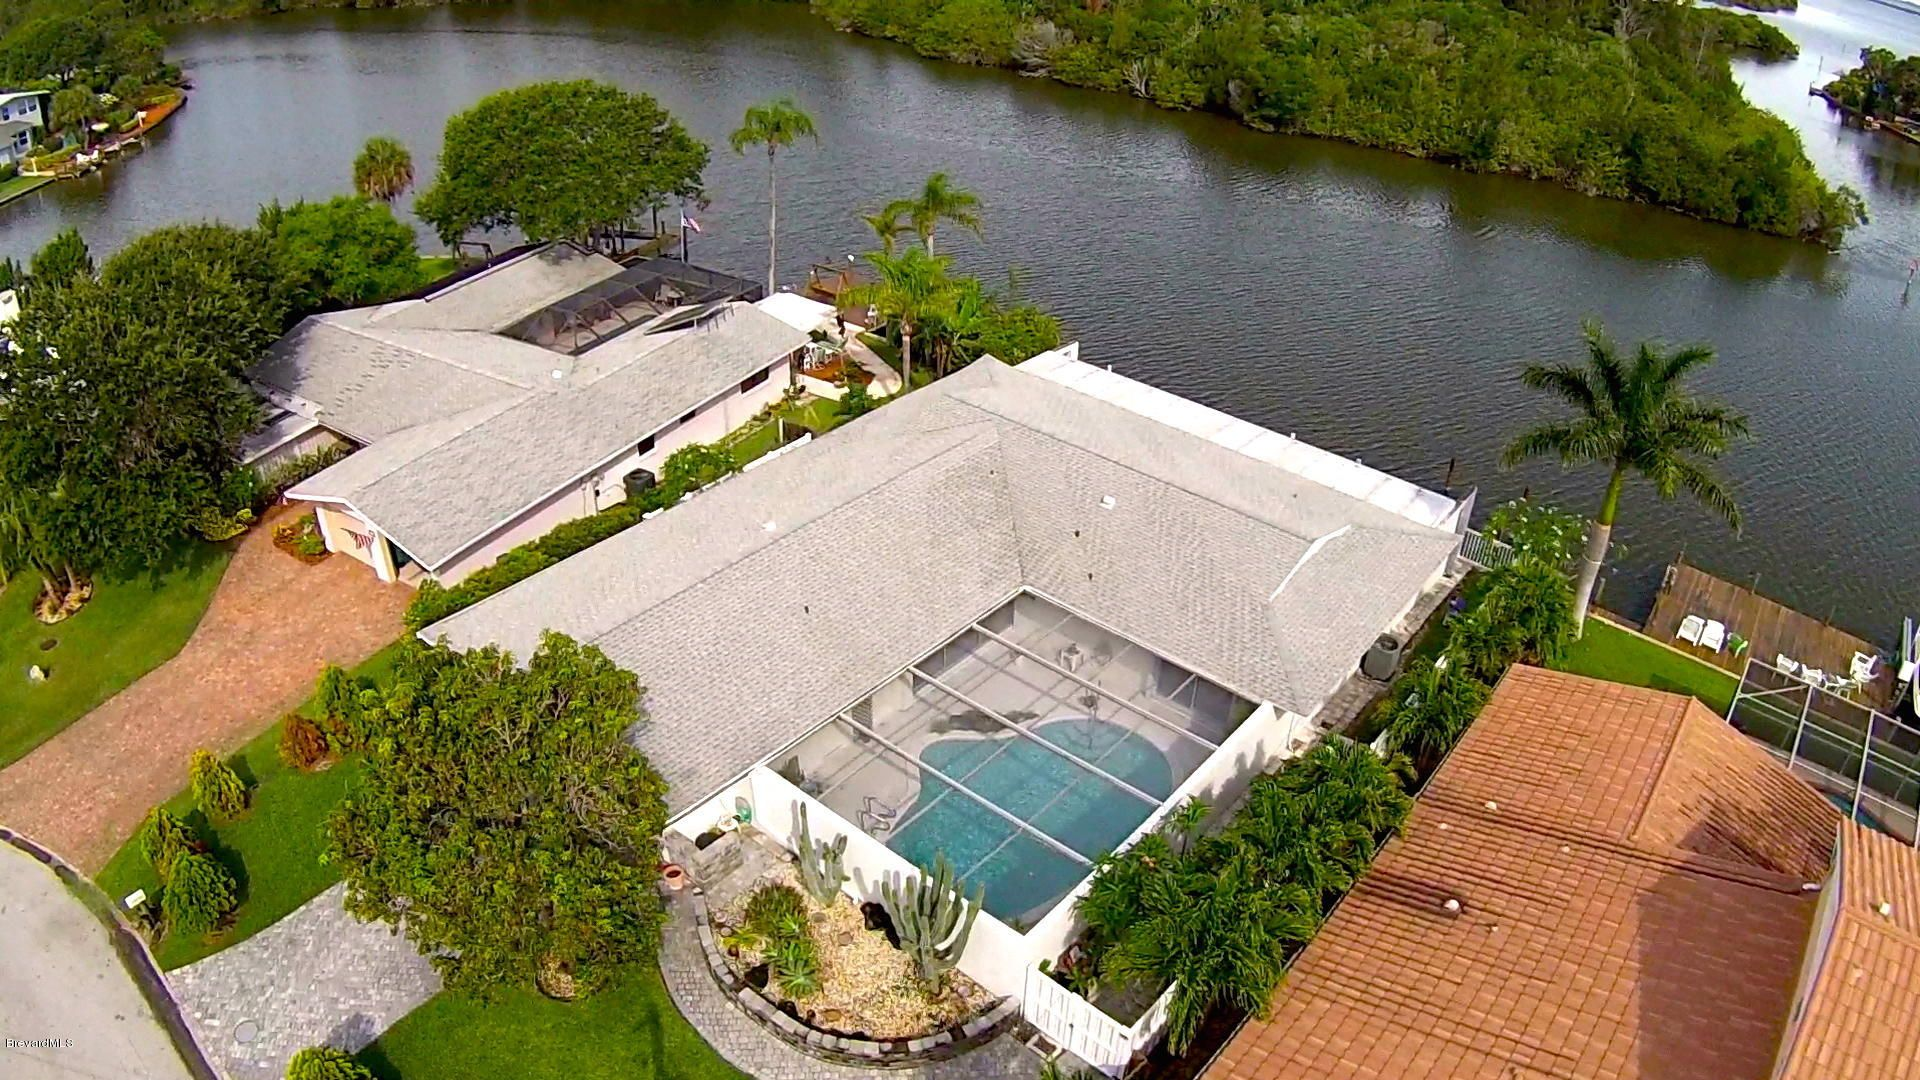 Photo For 251 Marion Street Indian Harbour Beach Fl 32937 Listing 756967 Comehometoflorida Com Space Coast Florida Homes For Sale Indian Harbour Beach Florida Beaches Florida Homes For Sale